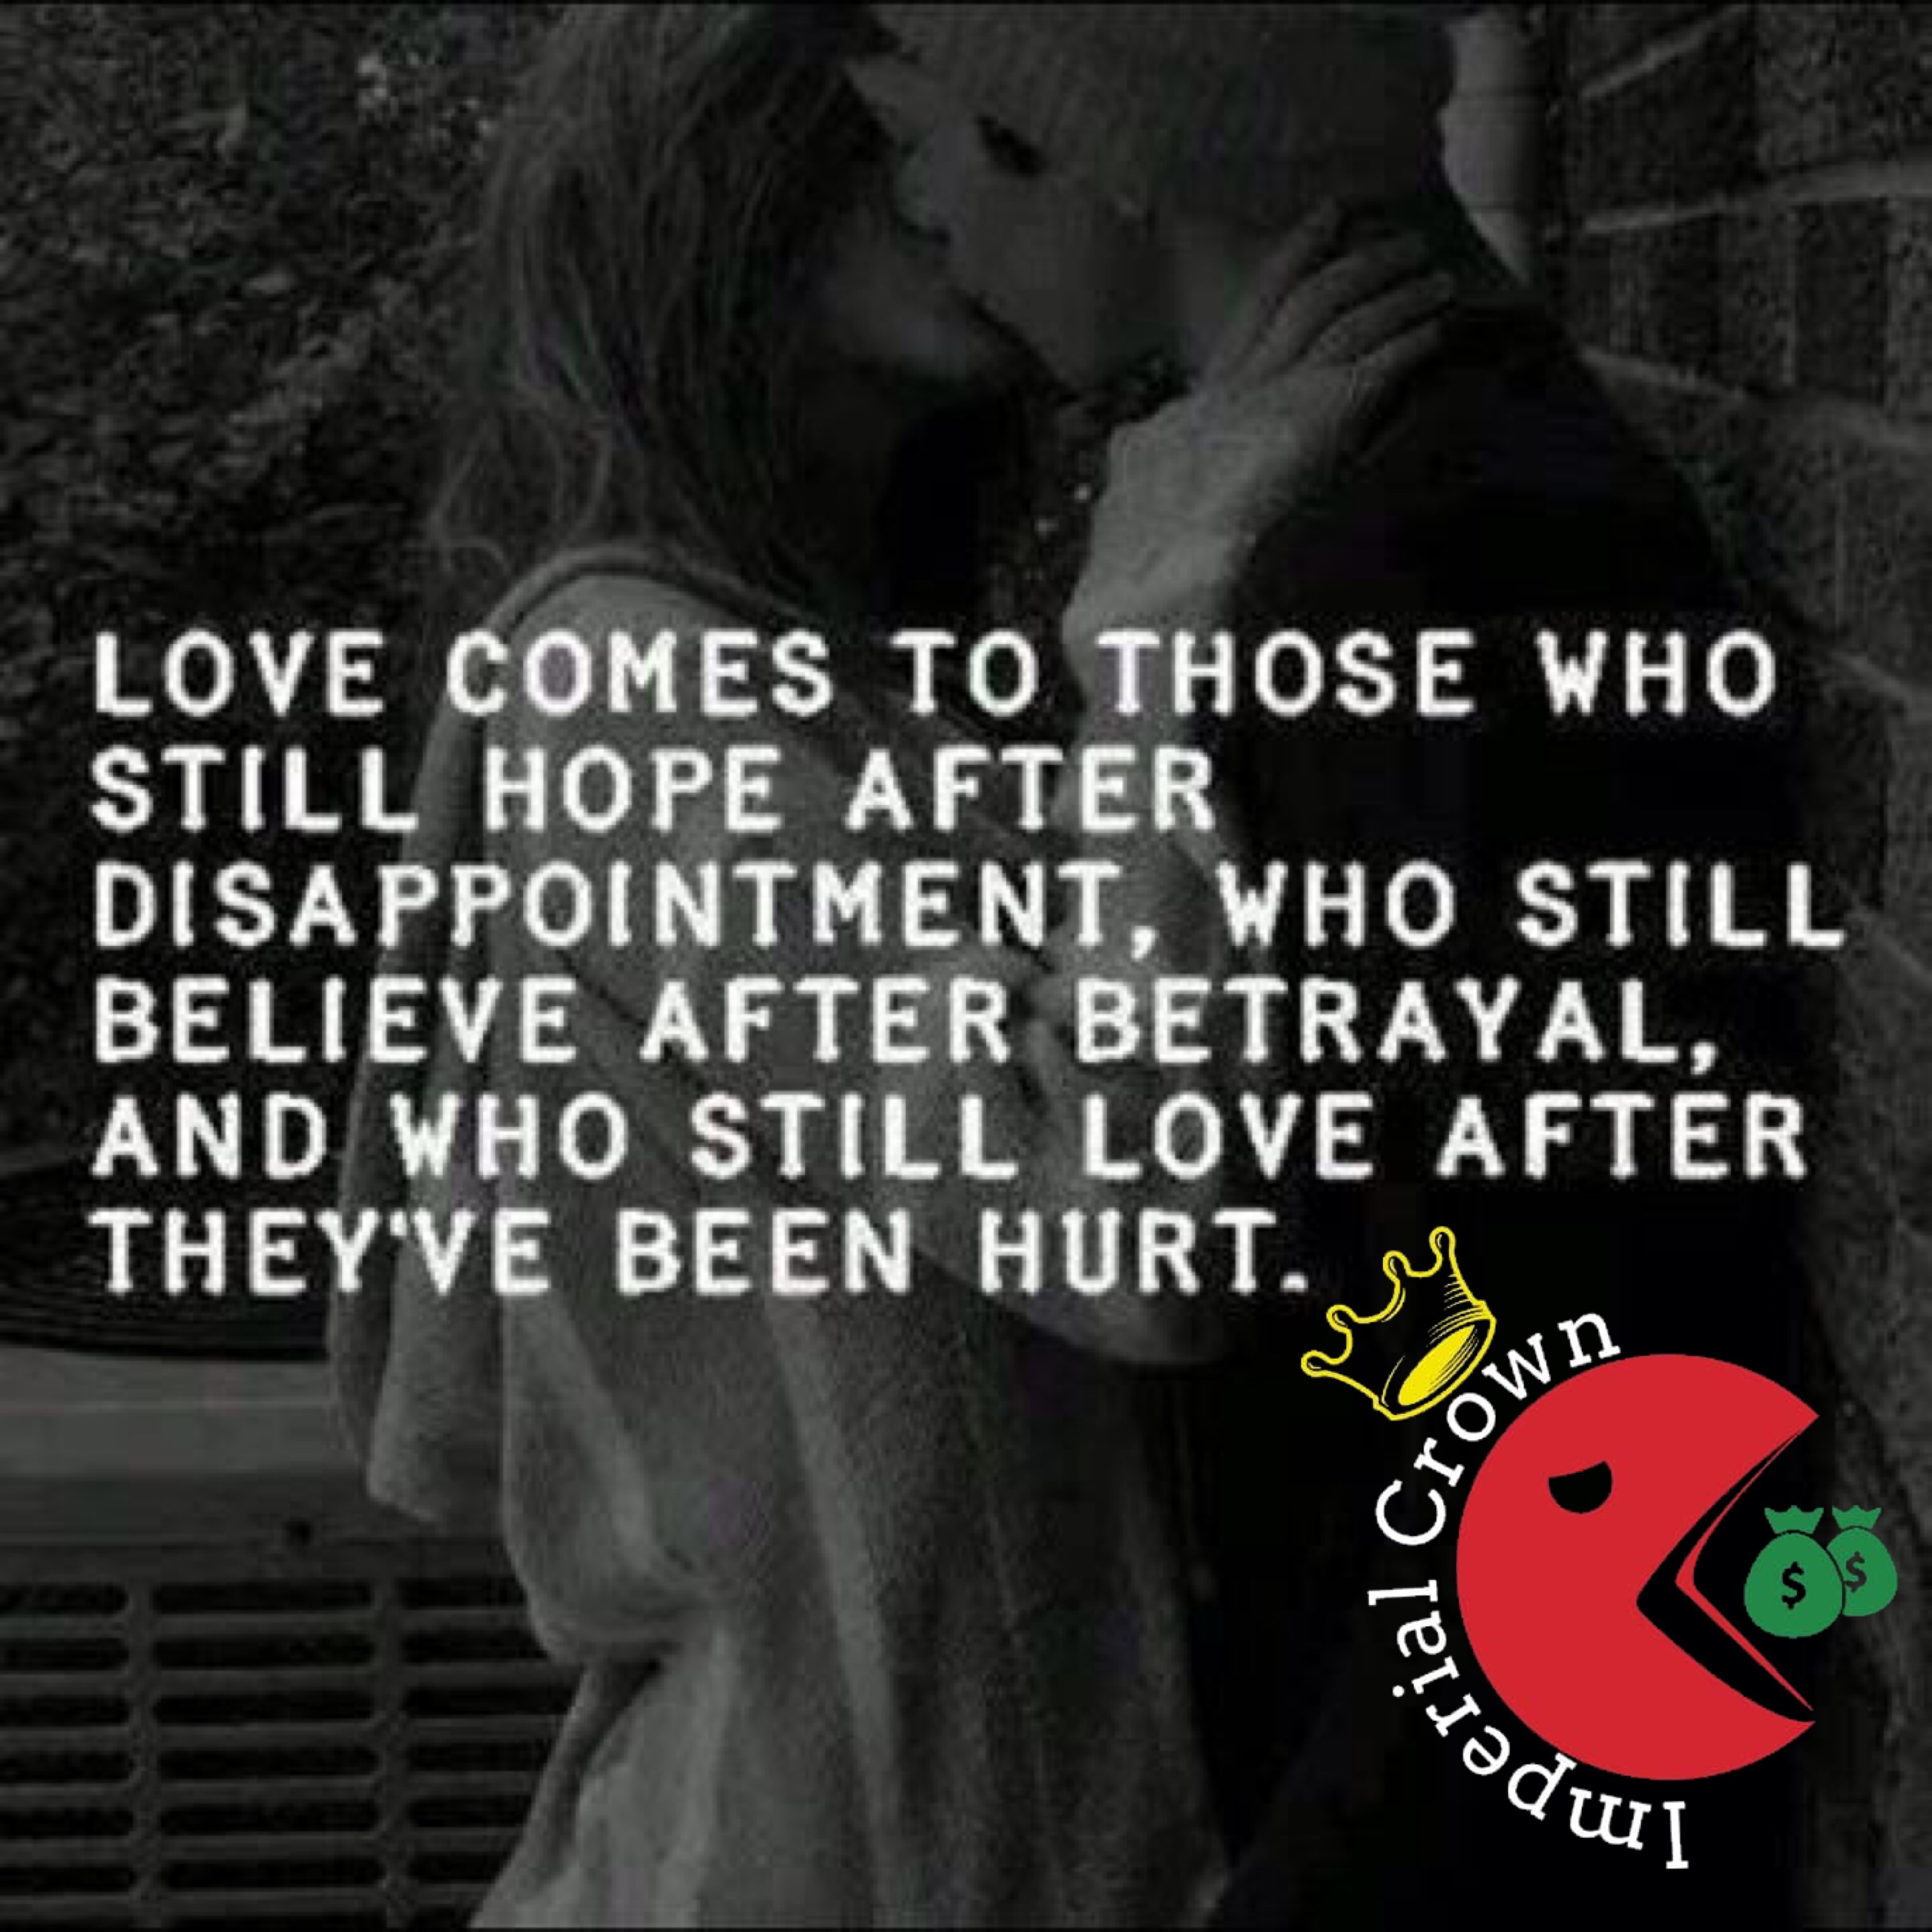 Love comes to those who still hope after disappointment who still believe after betrayal and who still love after they've been hurt